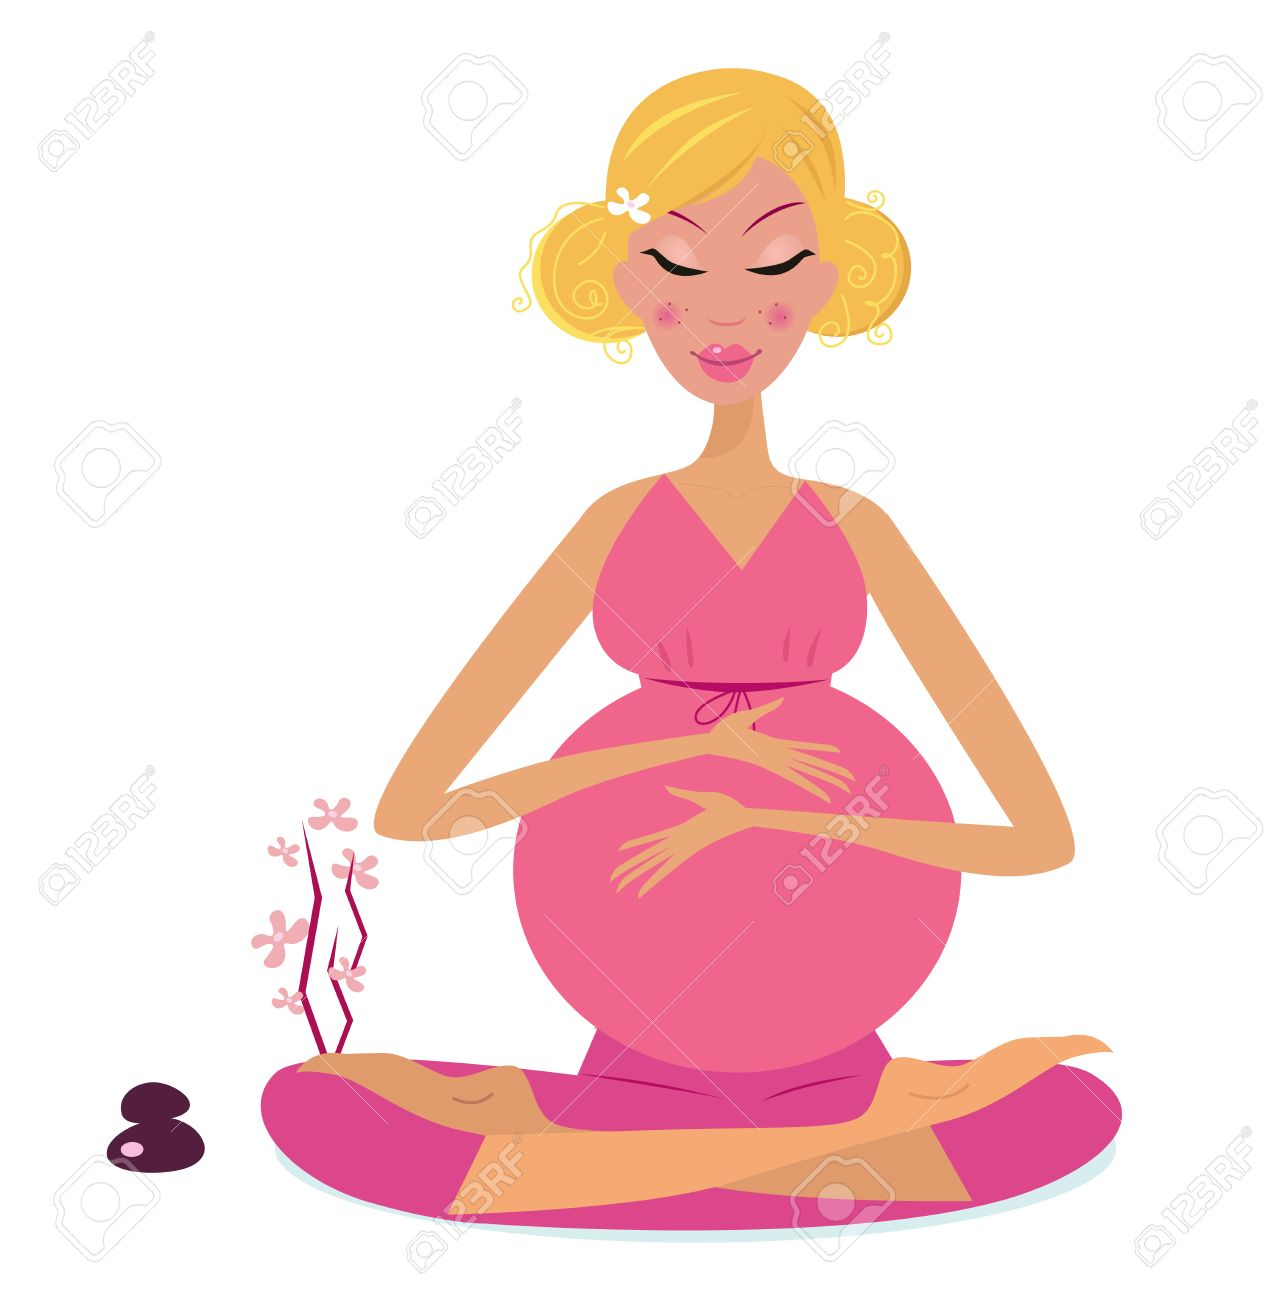 Pregnant woman doing yoga - isolated on white background. Stock Vector - 8713105